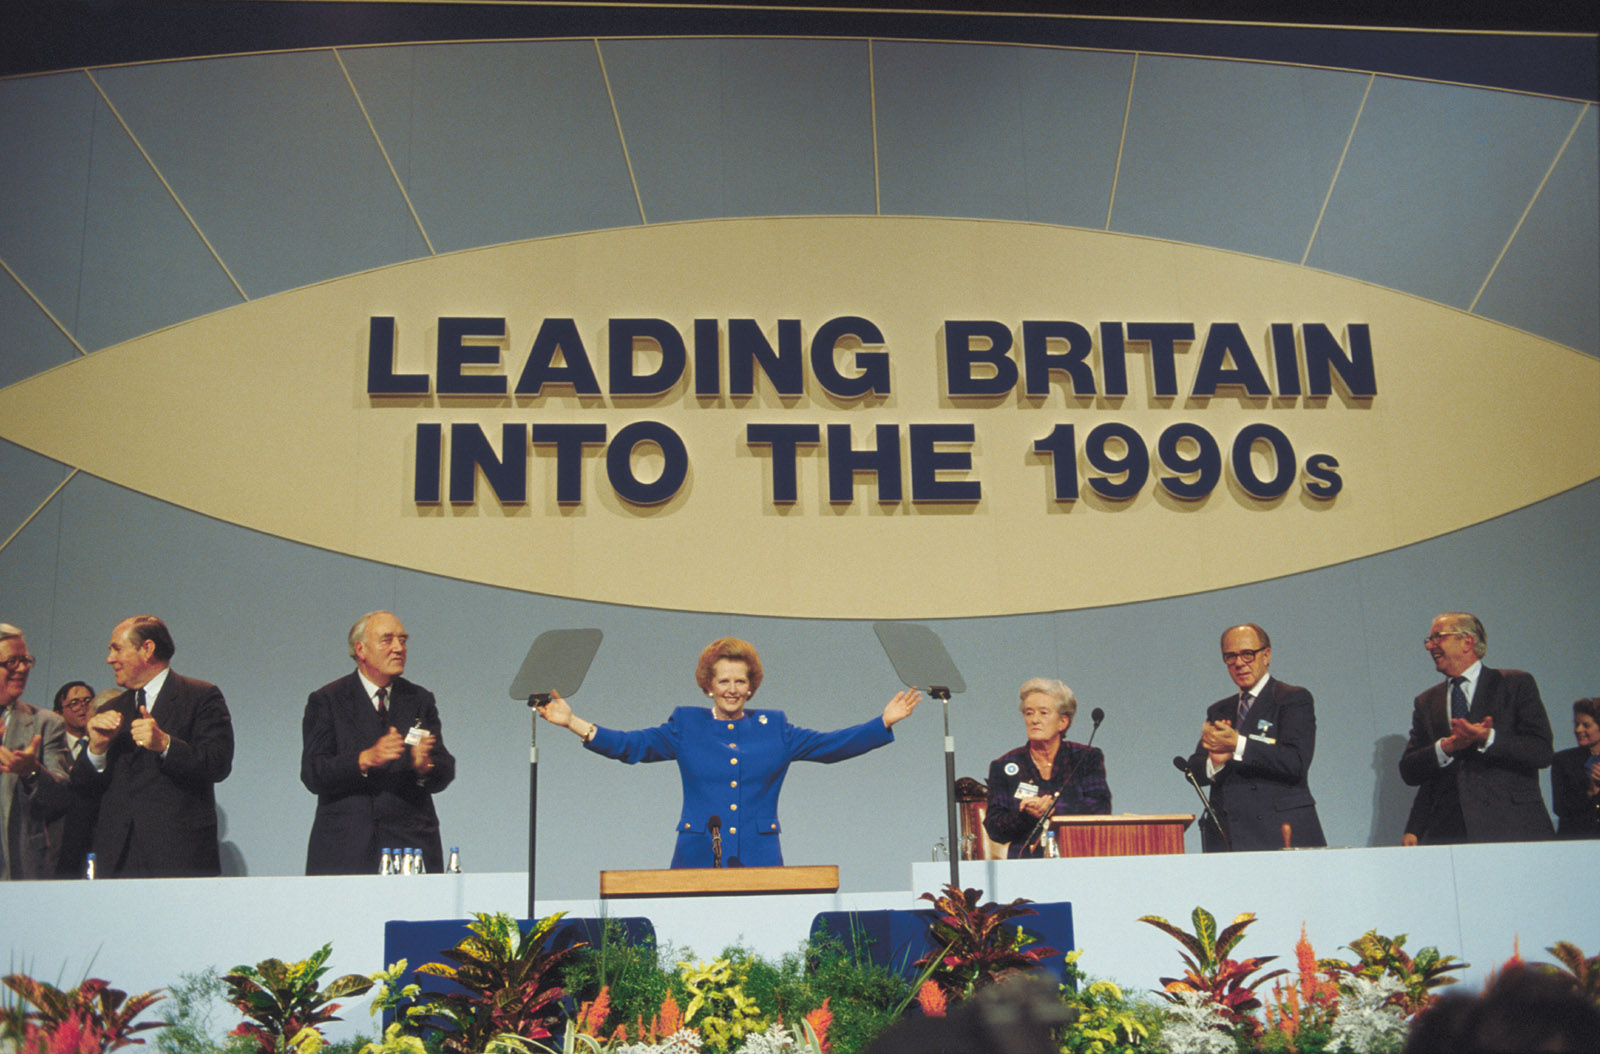 Prime Minister Margaret Thatcher at the 1988 Conservative Party conference